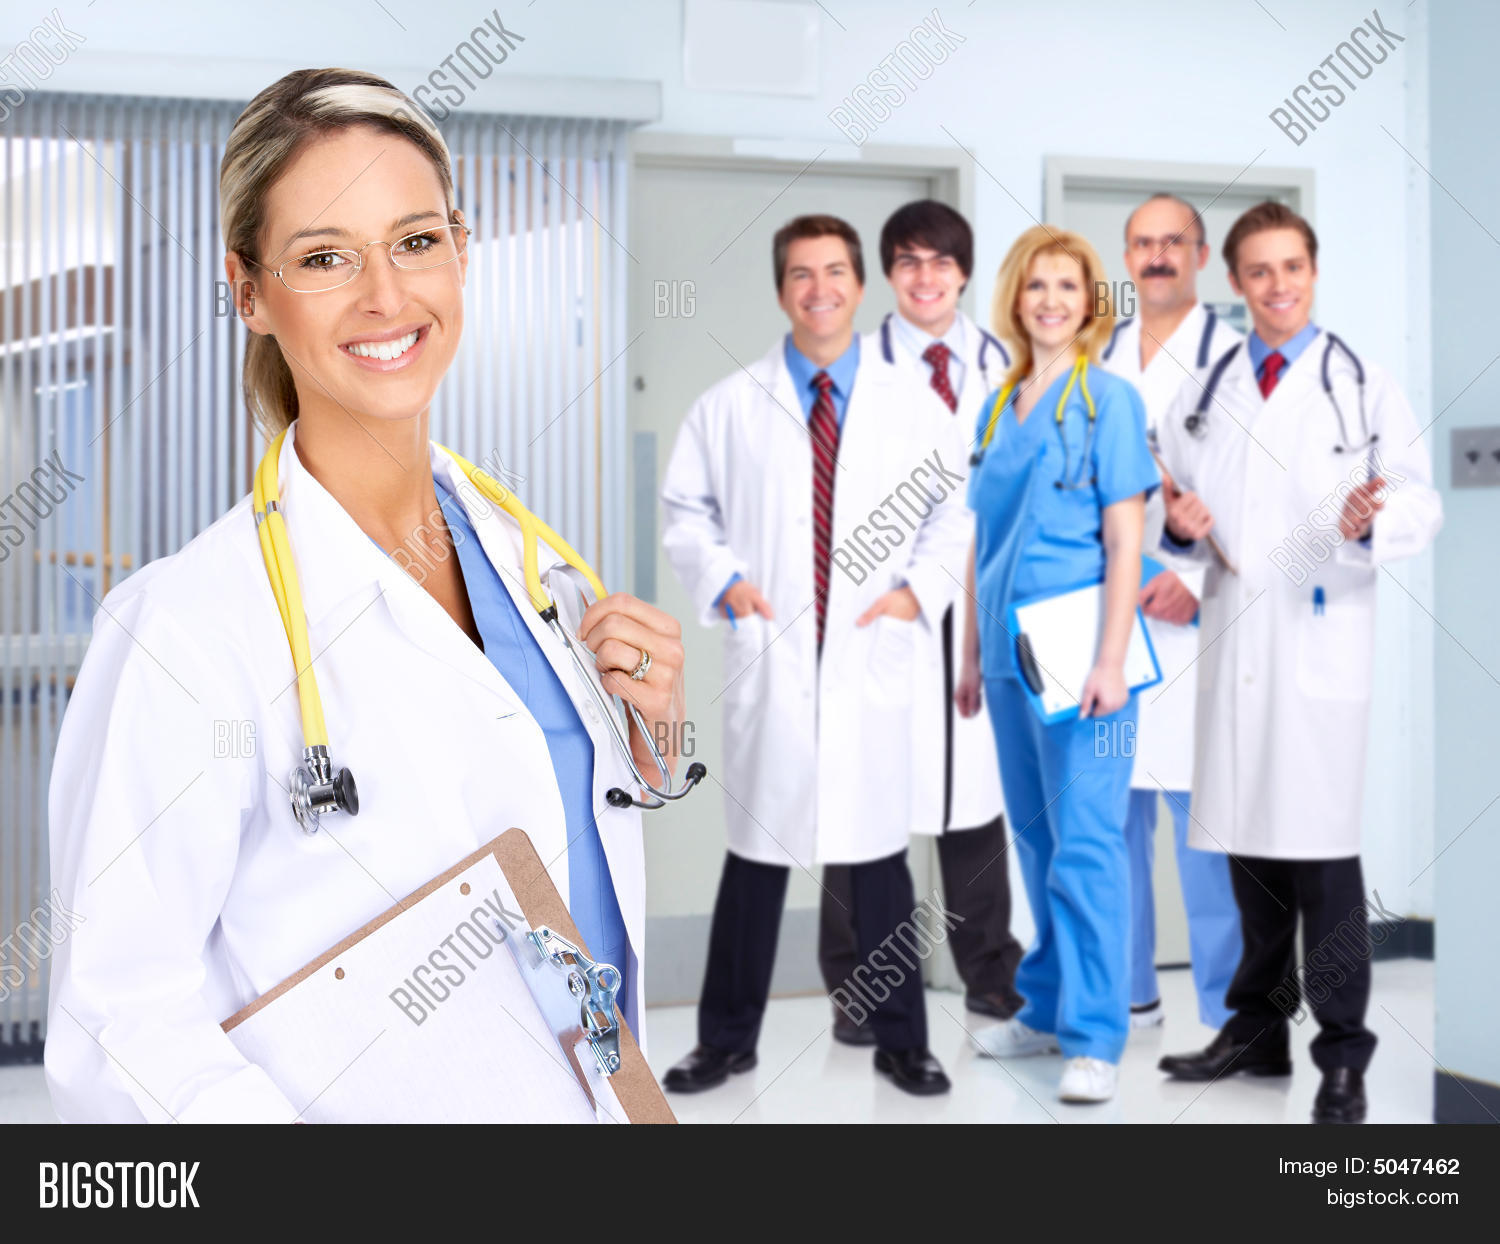 roles of doctors & nurses essay The roles and responsibilities of nurses are many and can be varied pending on the actual role in basic terms they are responsible for the treatment and recovery of sick and injured patients they are also involved in health maintenance and treating people in life threatening situations.